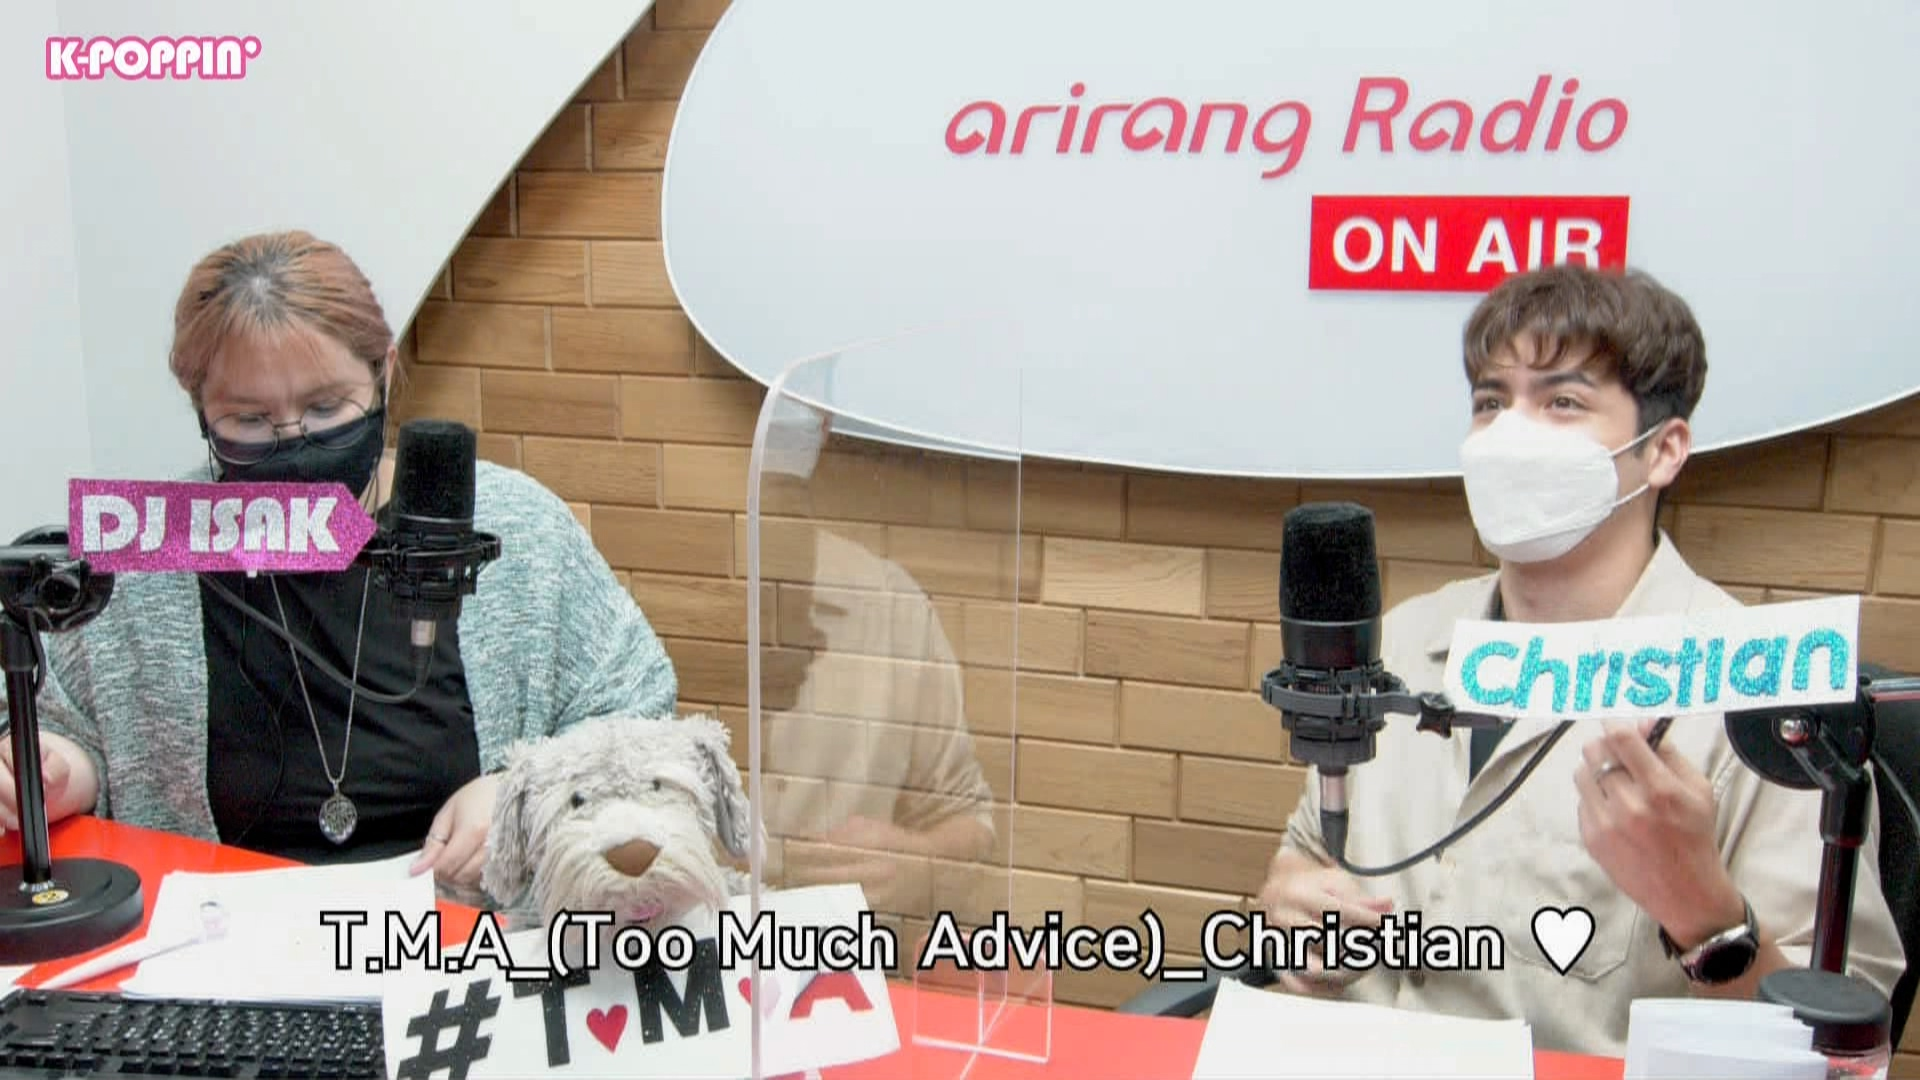 [K-Poppin'] Too Much Advice with Christian Burgos 크리스티안 부르고스 : He is too rational in all situations.